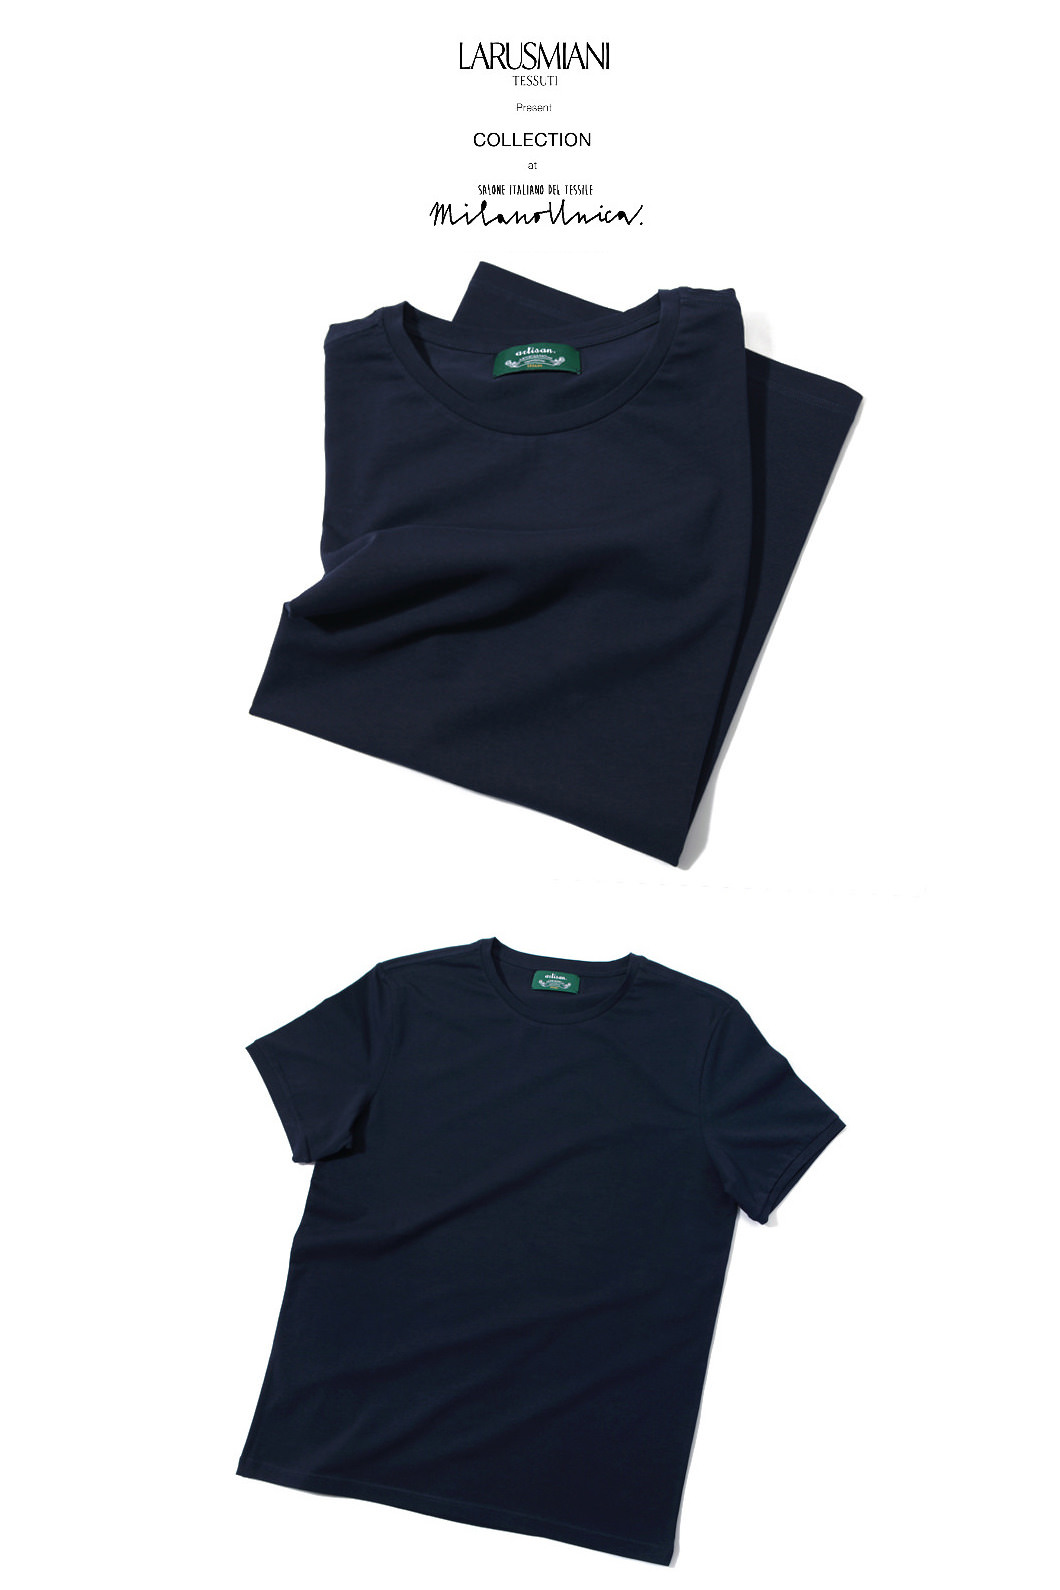 Take356 Larusmiani milano-italy basic t-shirt/4color